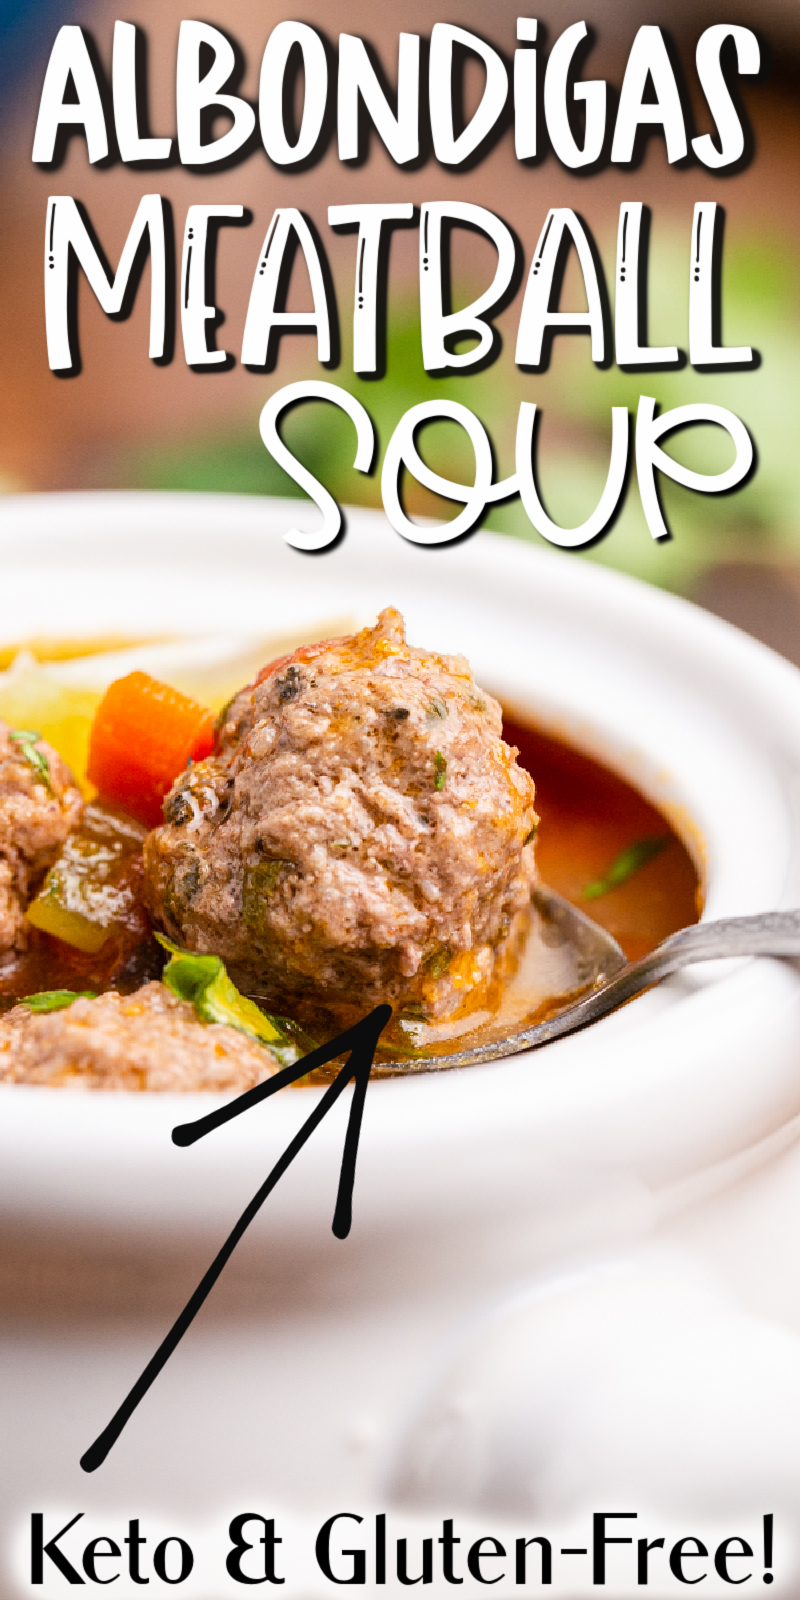 Keto Albondigas (Meatball) Soup - This Keto Albondigas (Meatball) Soup recipe is a low carb version of a Mexican classic. This soup is full of vegetables, tender meatballs, and a rich tomato broth. #keto #lowcarb #glutenfree #mexican #soup #beef #groundbeef #recipe